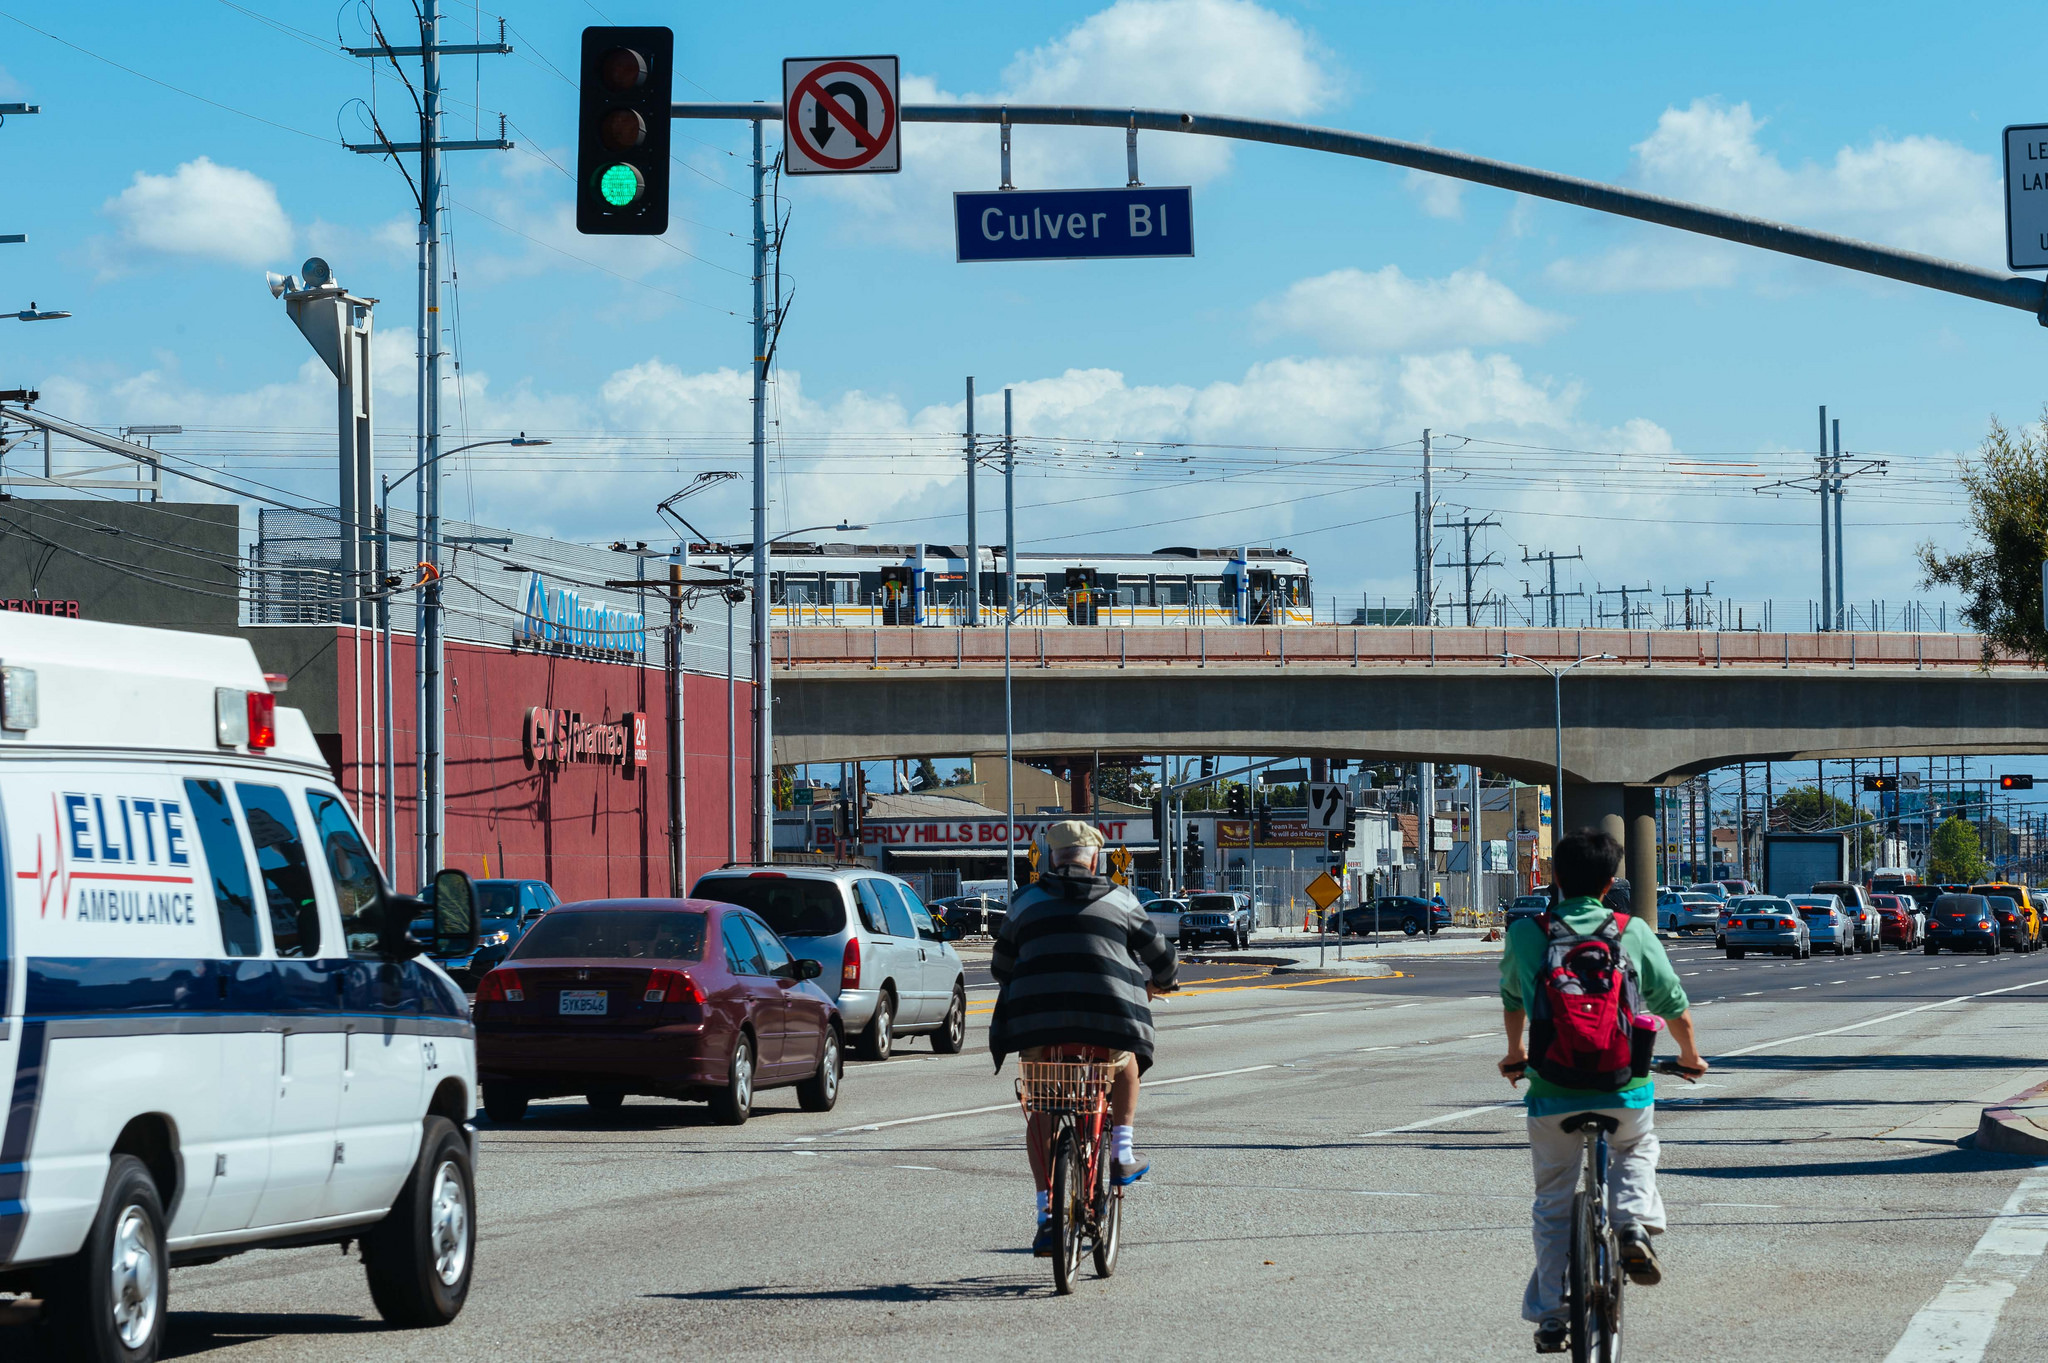 The bridge over Venice Boulevard unfamiliar to David Ulin. Photo by Steve Hymon/Metro.